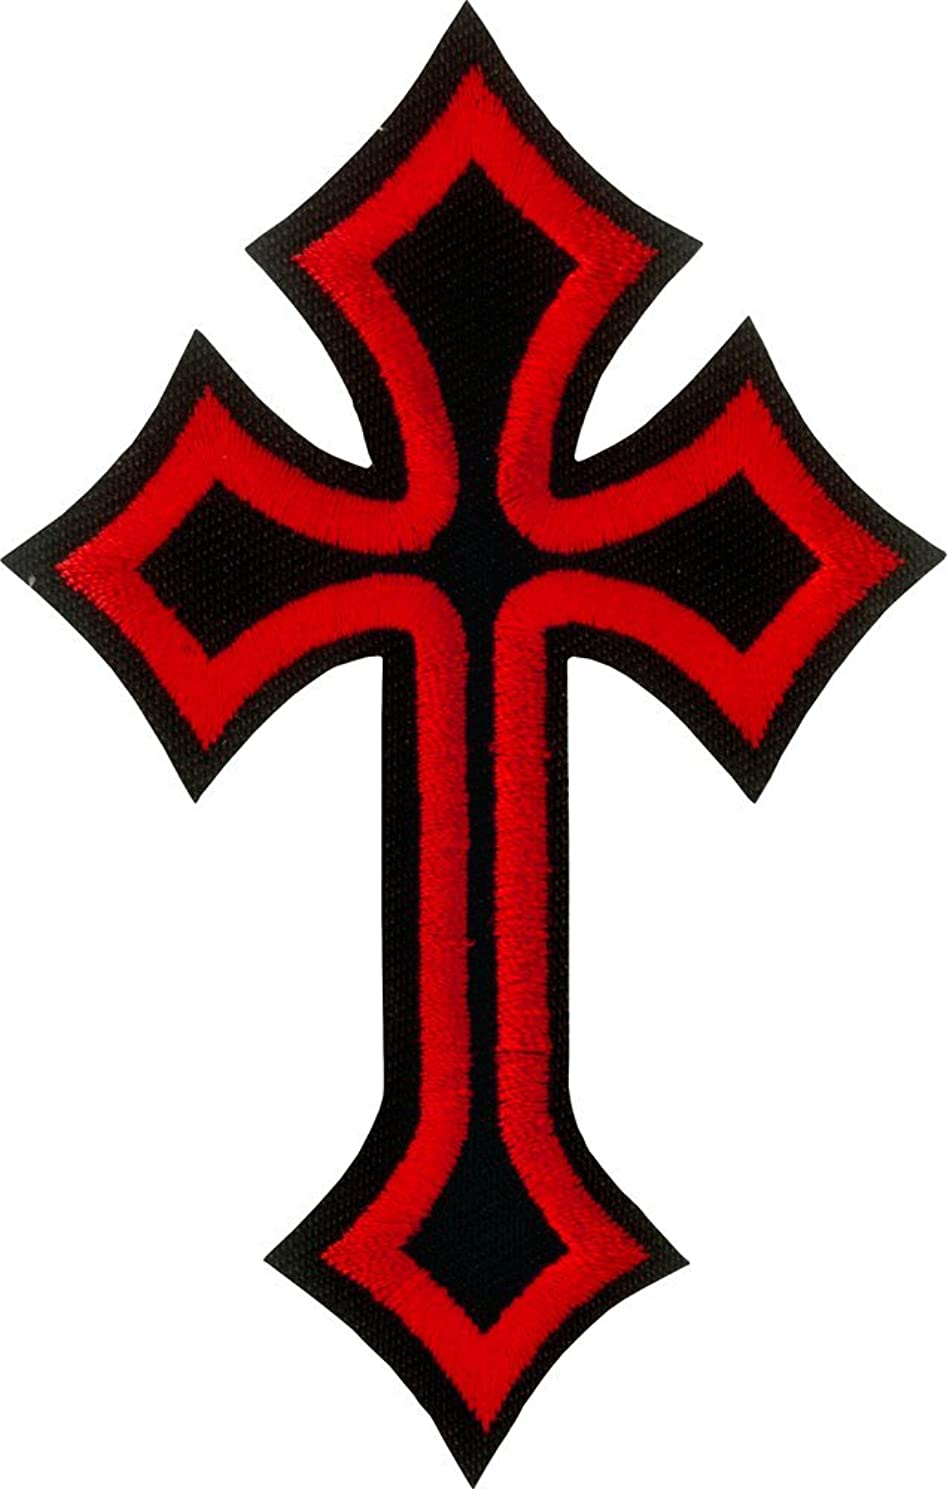 Red & Black Cross - Cut Out Embroidered Iron On or Sew On Patch